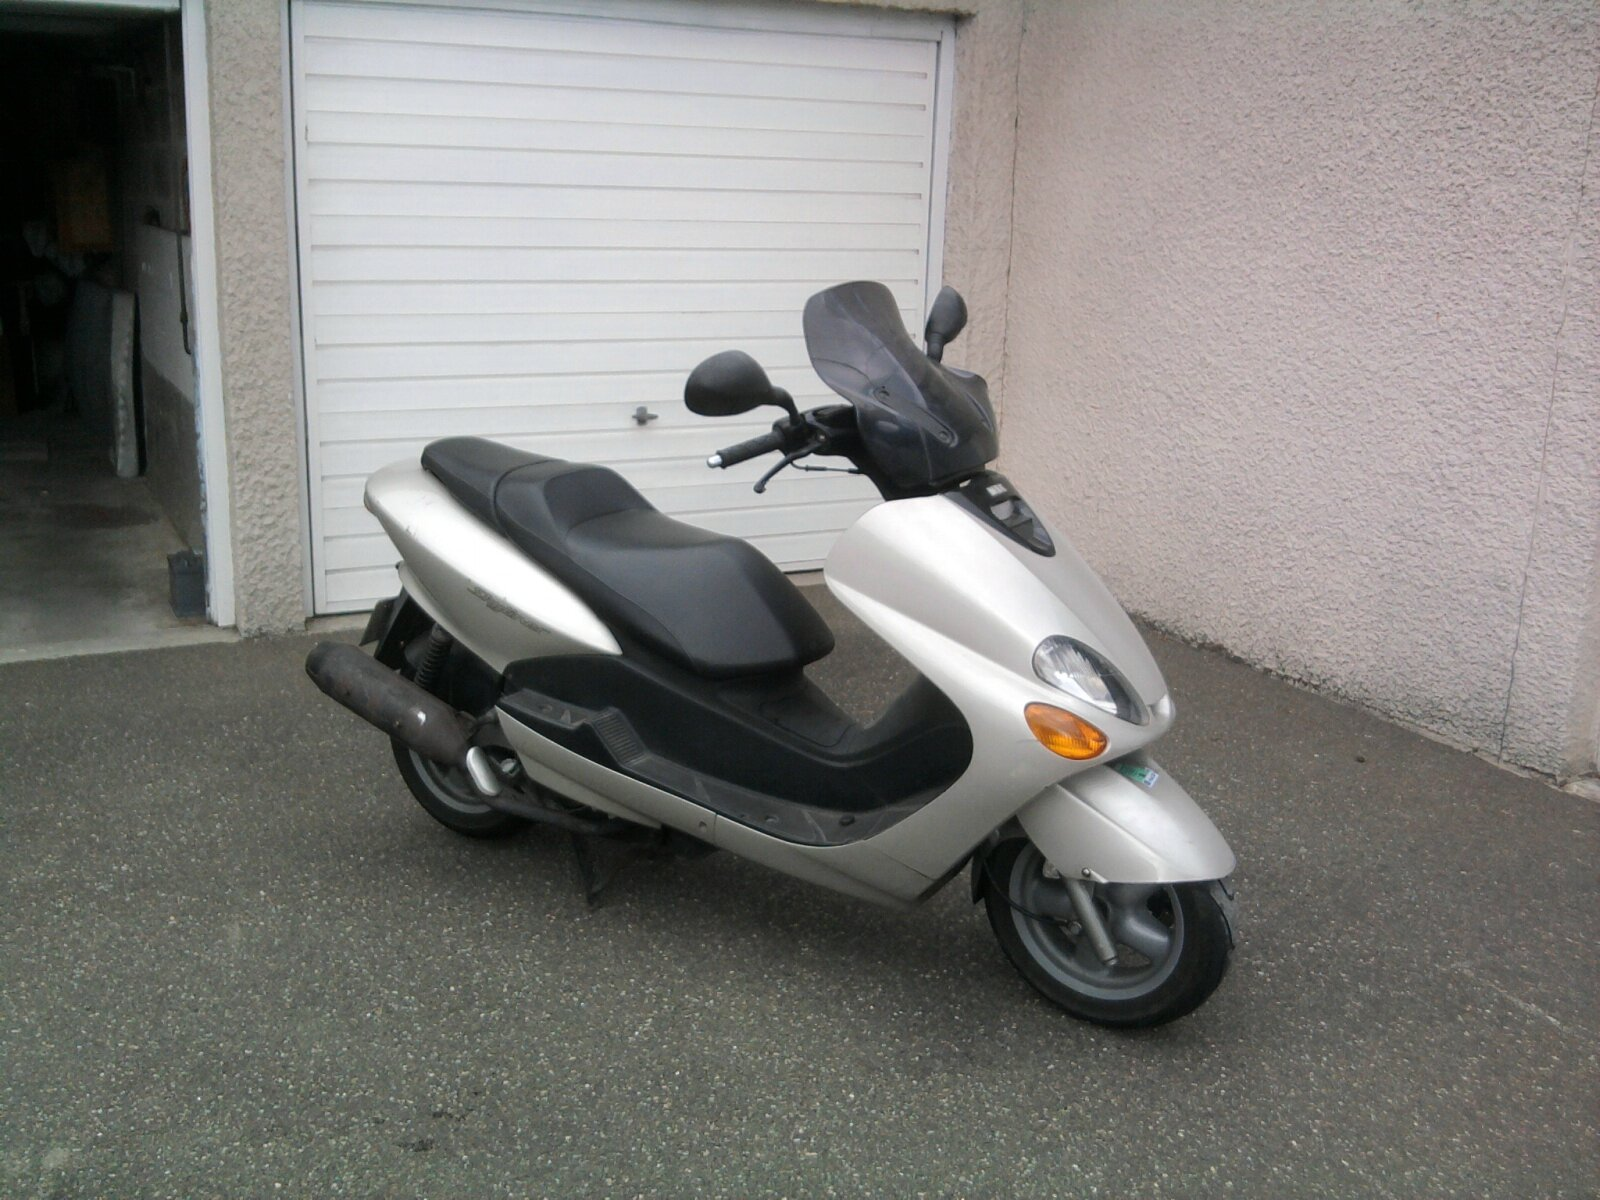 a vendre scooter mbk skyliner 125 cm3 r parmoto. Black Bedroom Furniture Sets. Home Design Ideas